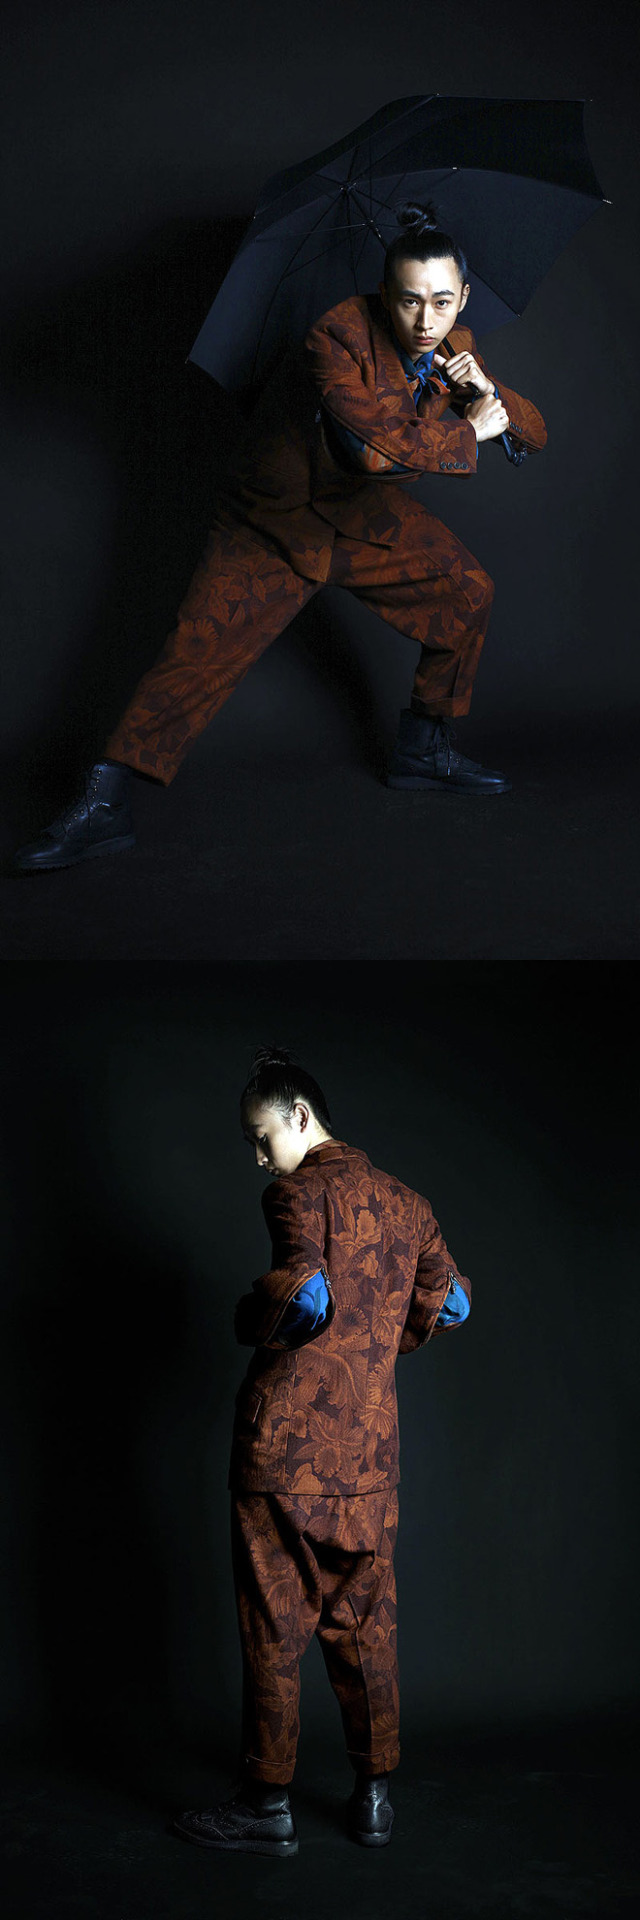 Shohei Yamashita in Yohji Yamamoto AW14 by Shiraz Randeria for Wallpaper* (Thai Edition), October 2014.